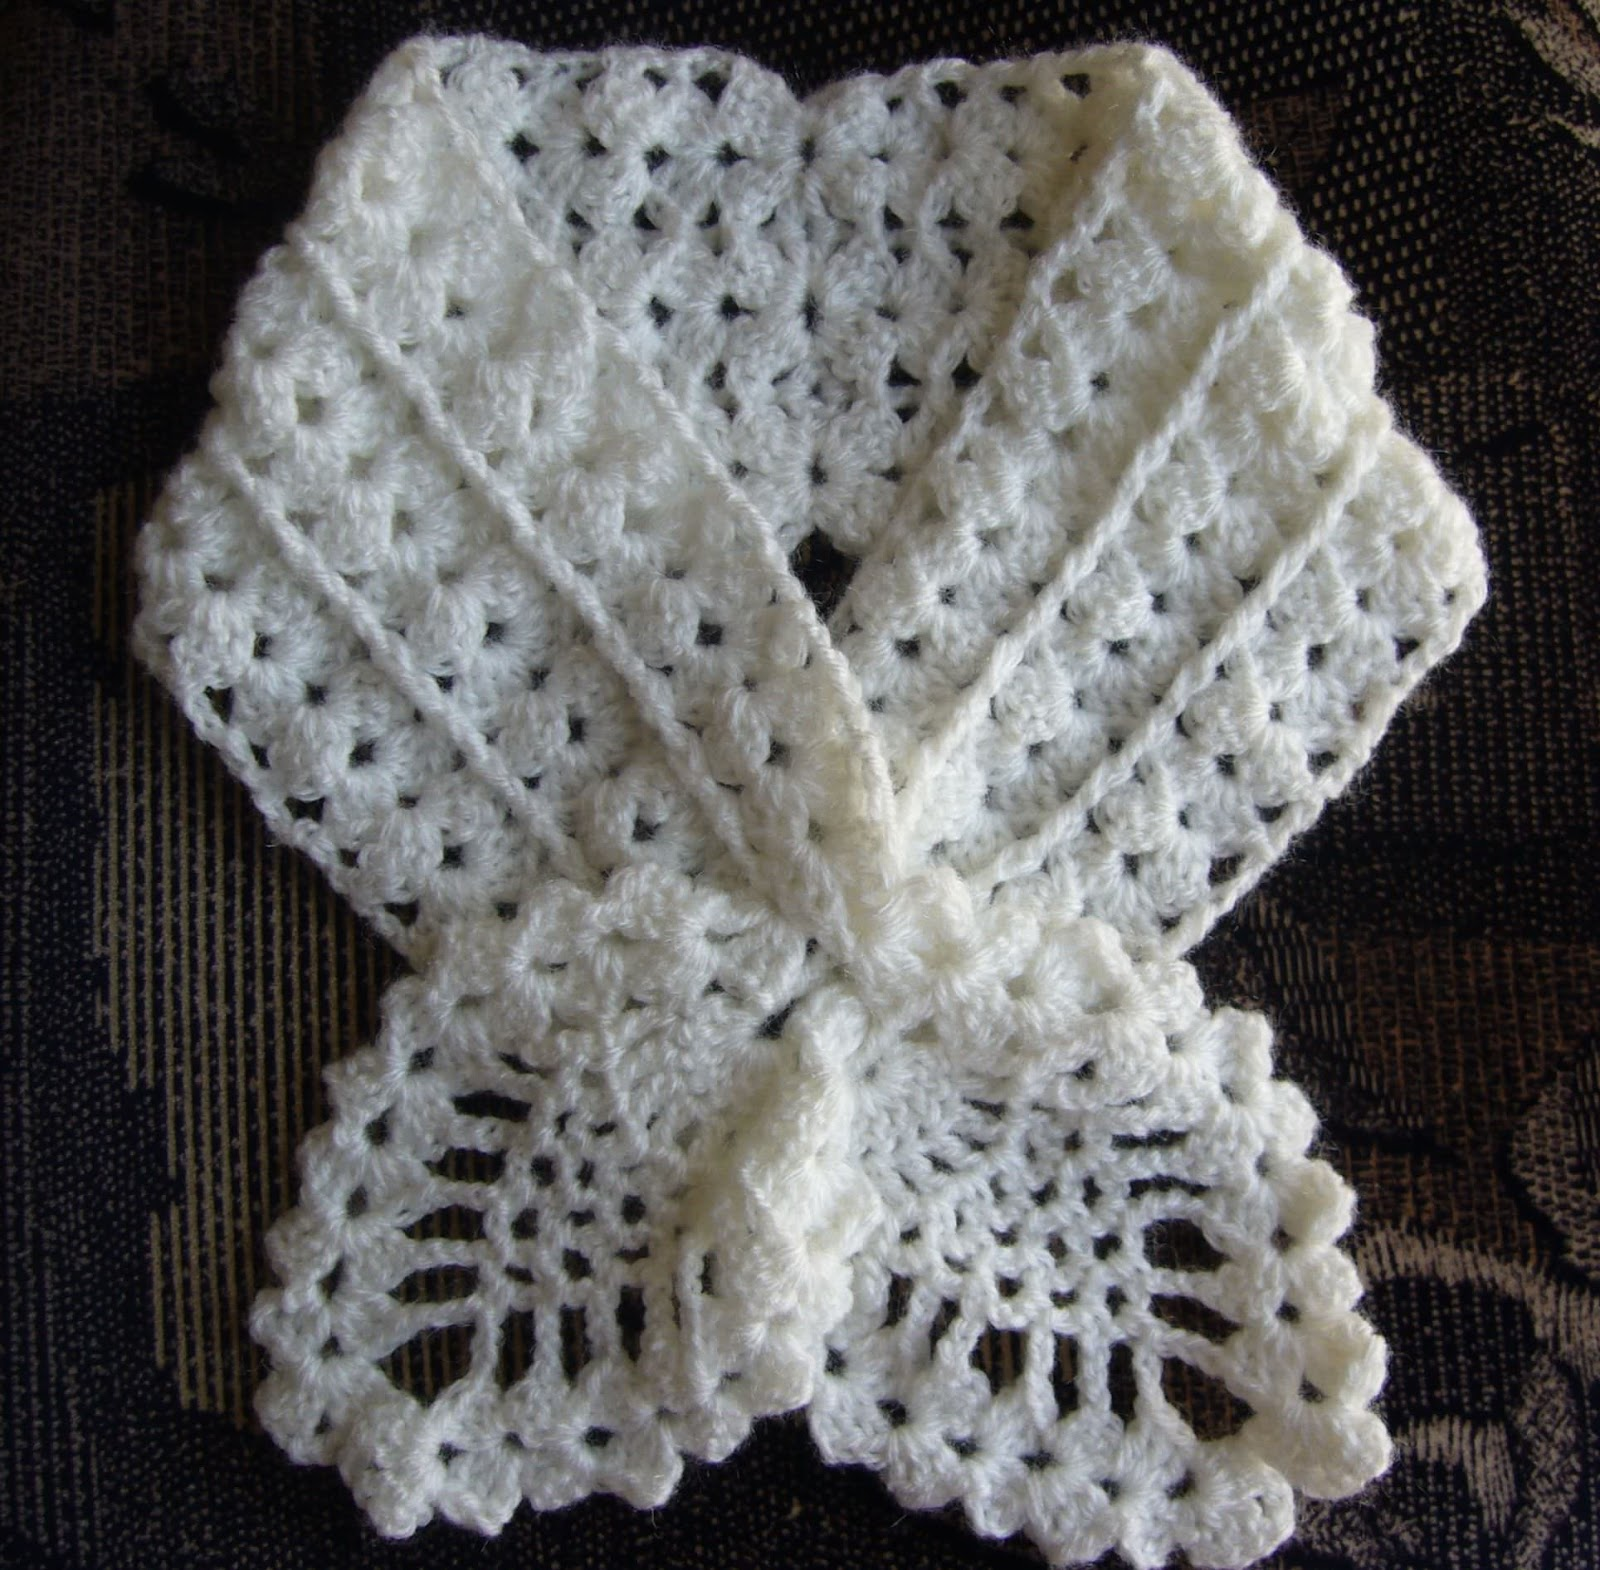 Crochet Patterns Neck Warmers : loved this pattern. It is so feminine and delicate. The scarf pattern ...